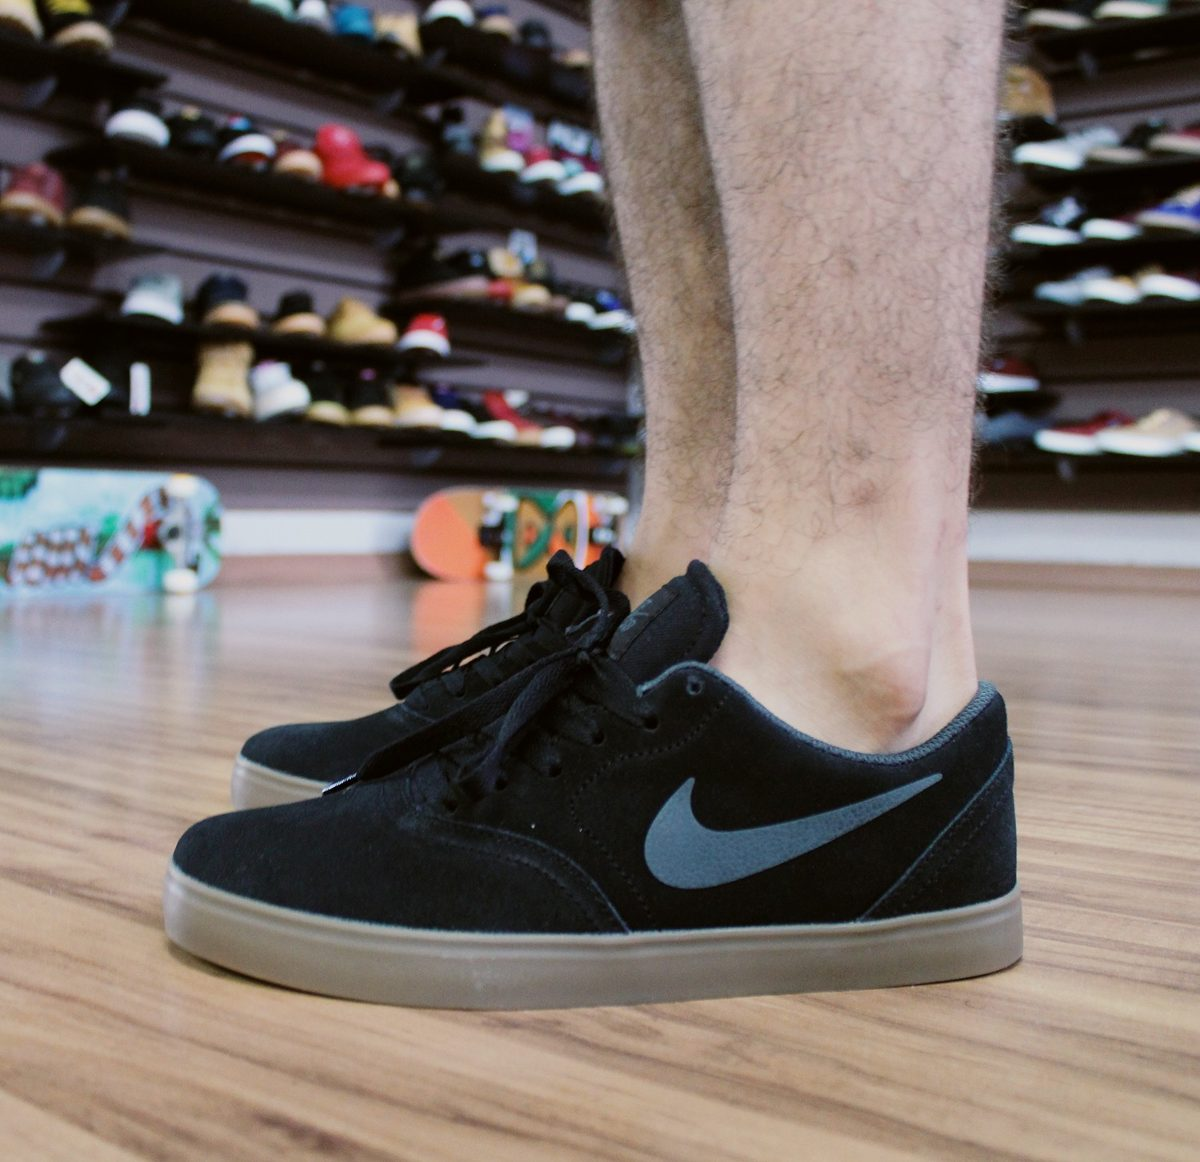 3990ce9df1 tênis nike sb check preto crepe original - willian radical. Carregando zoom.